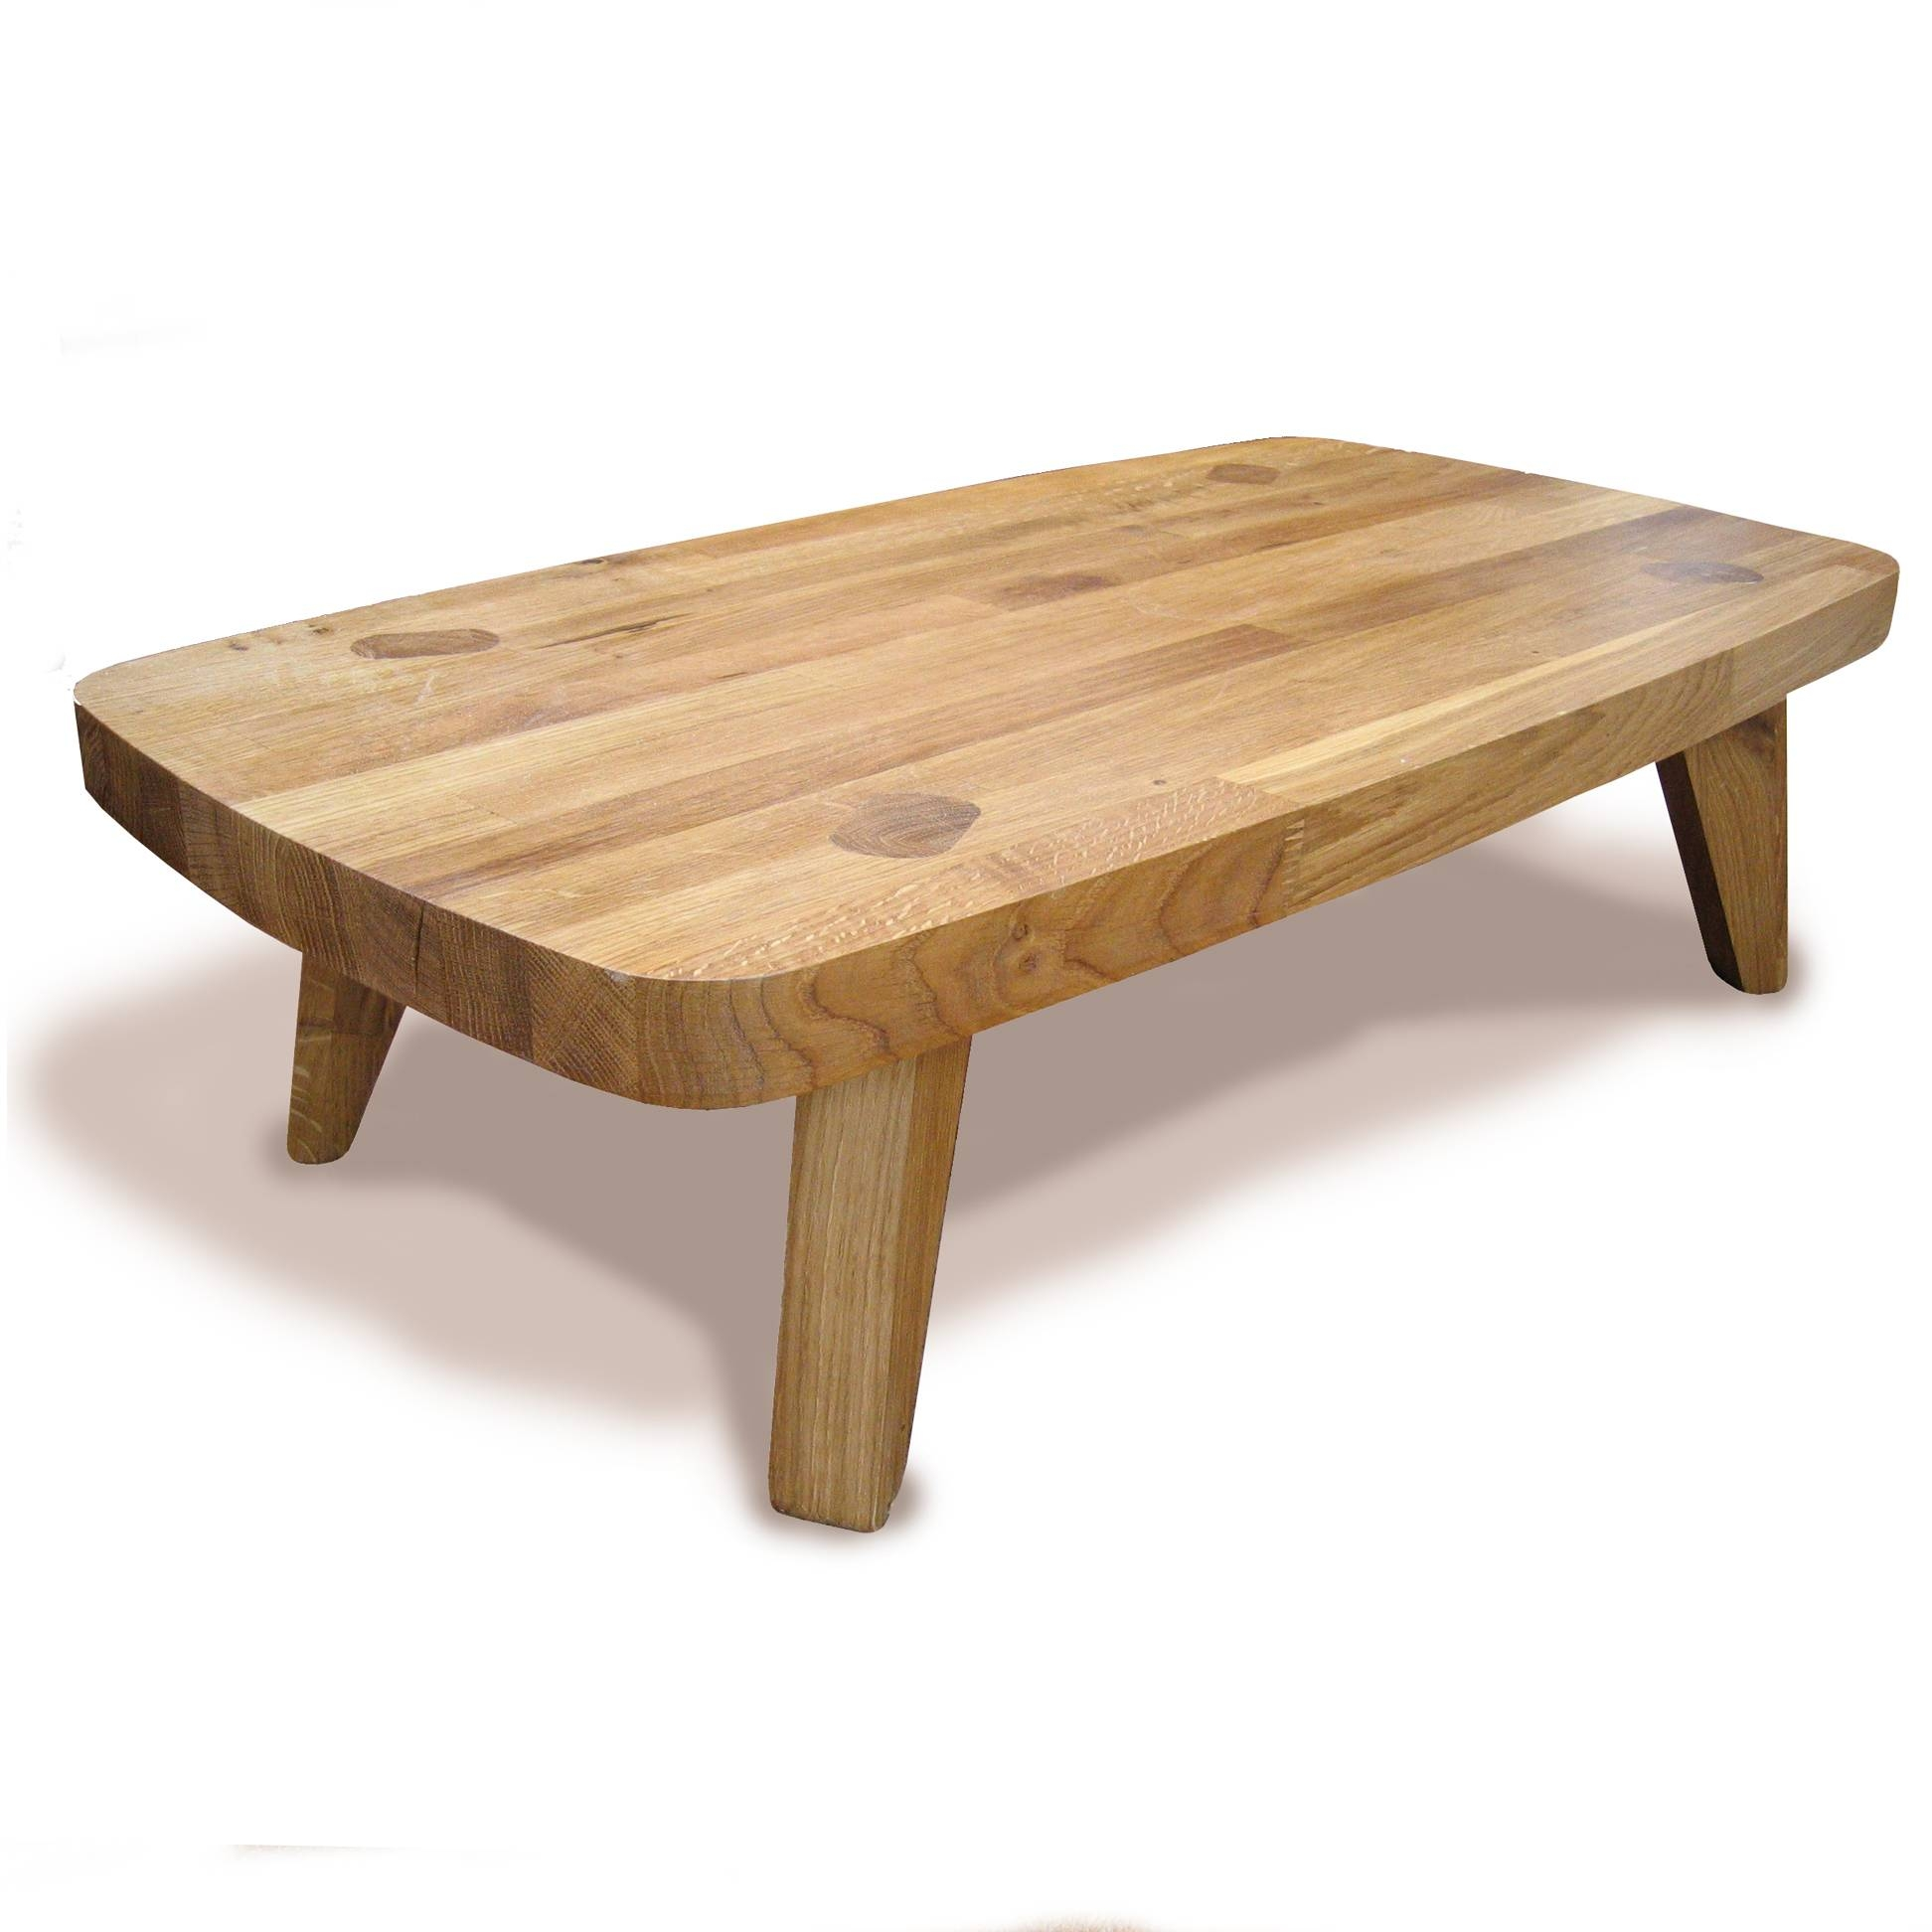 12 Stylish Oak Coffee Tables | Coffe Table Gallery in Oak Wood Coffee Tables (Image 1 of 15)